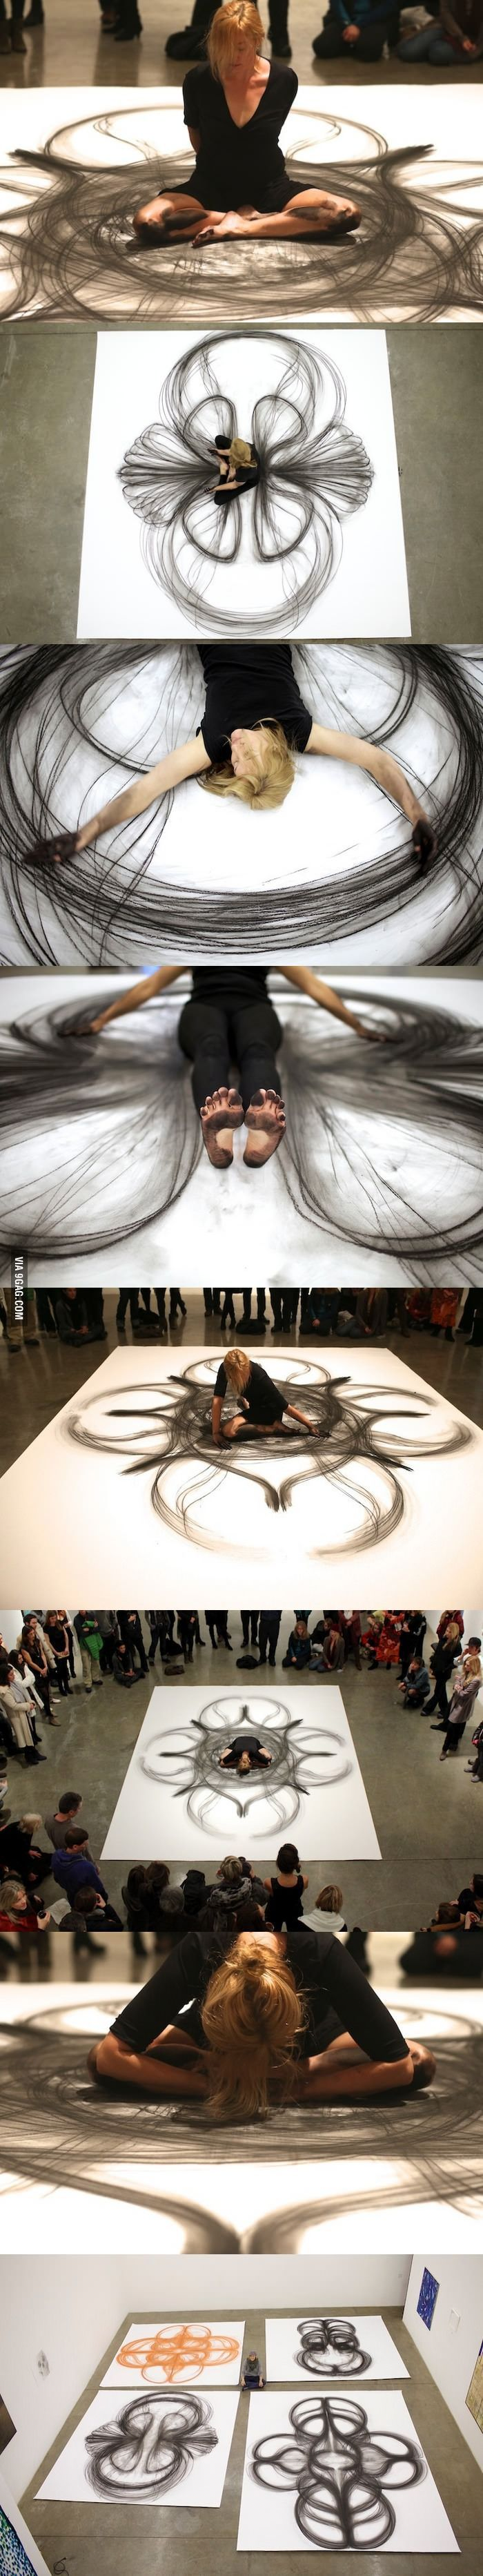 Artist makes life-size art using just her body and a piece of charcoal